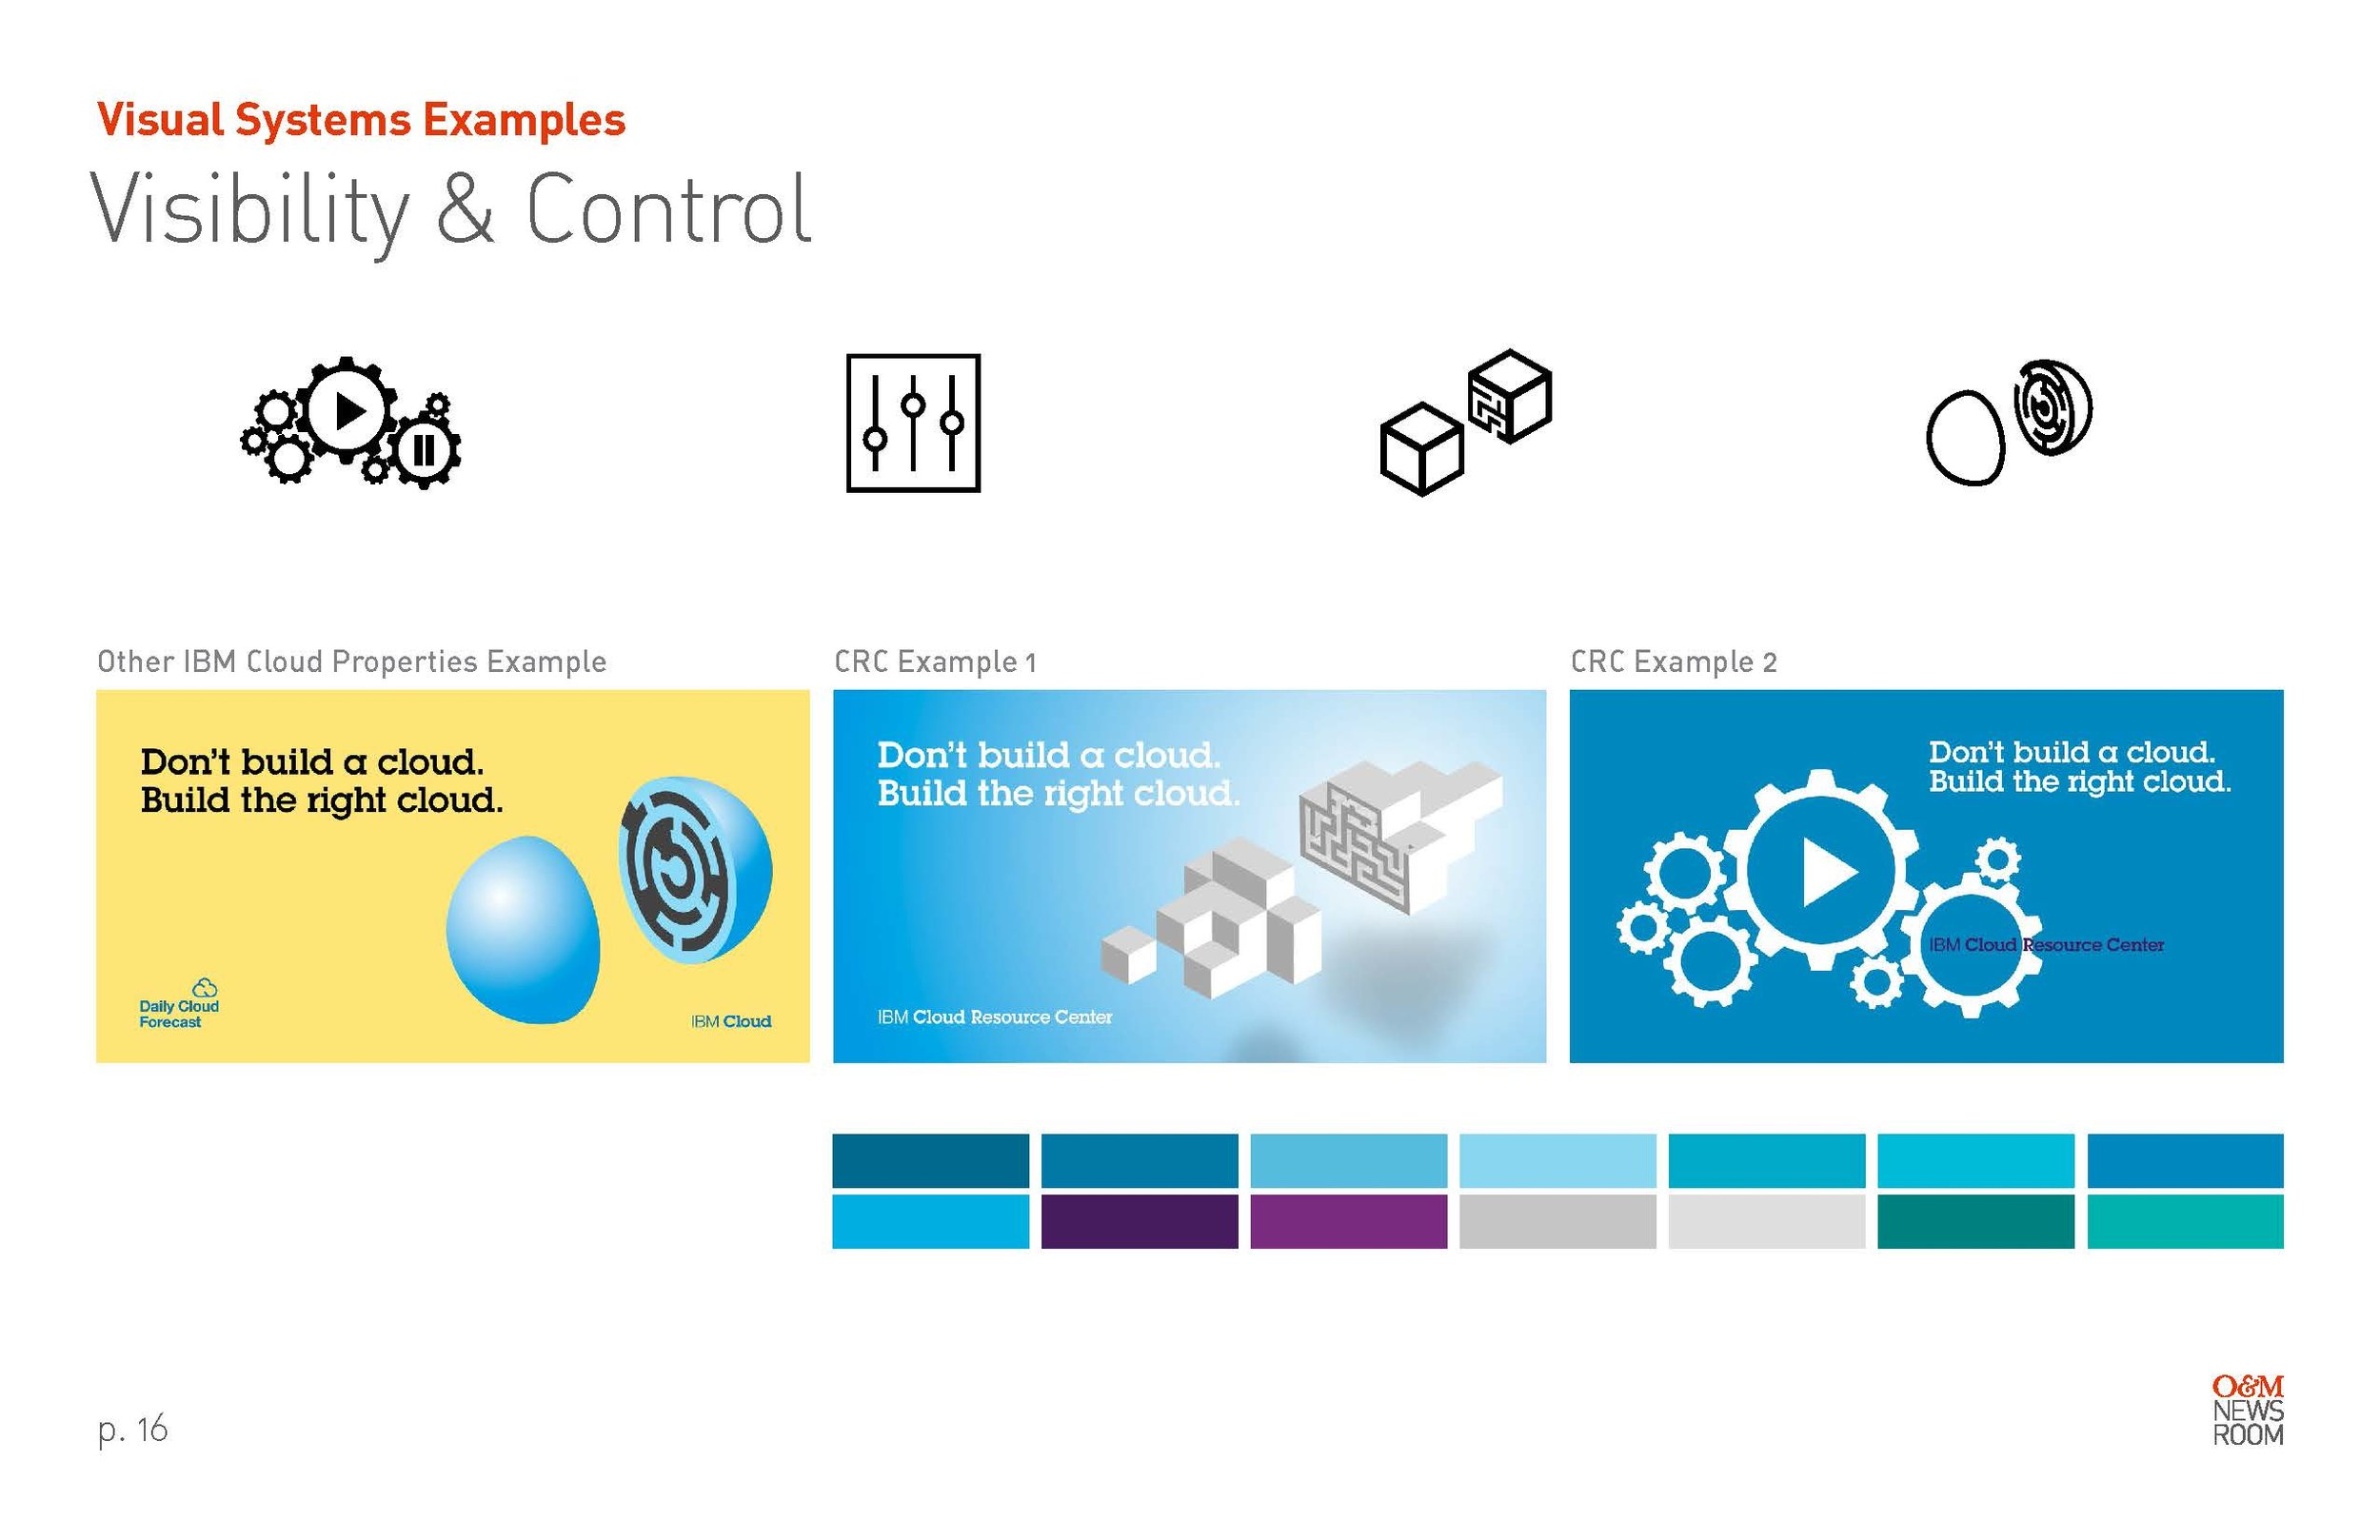 IBMNR_Cloud_Always_On_Social_Visual_Systems_Tone_of_Voice_042815_Page_16.jpg